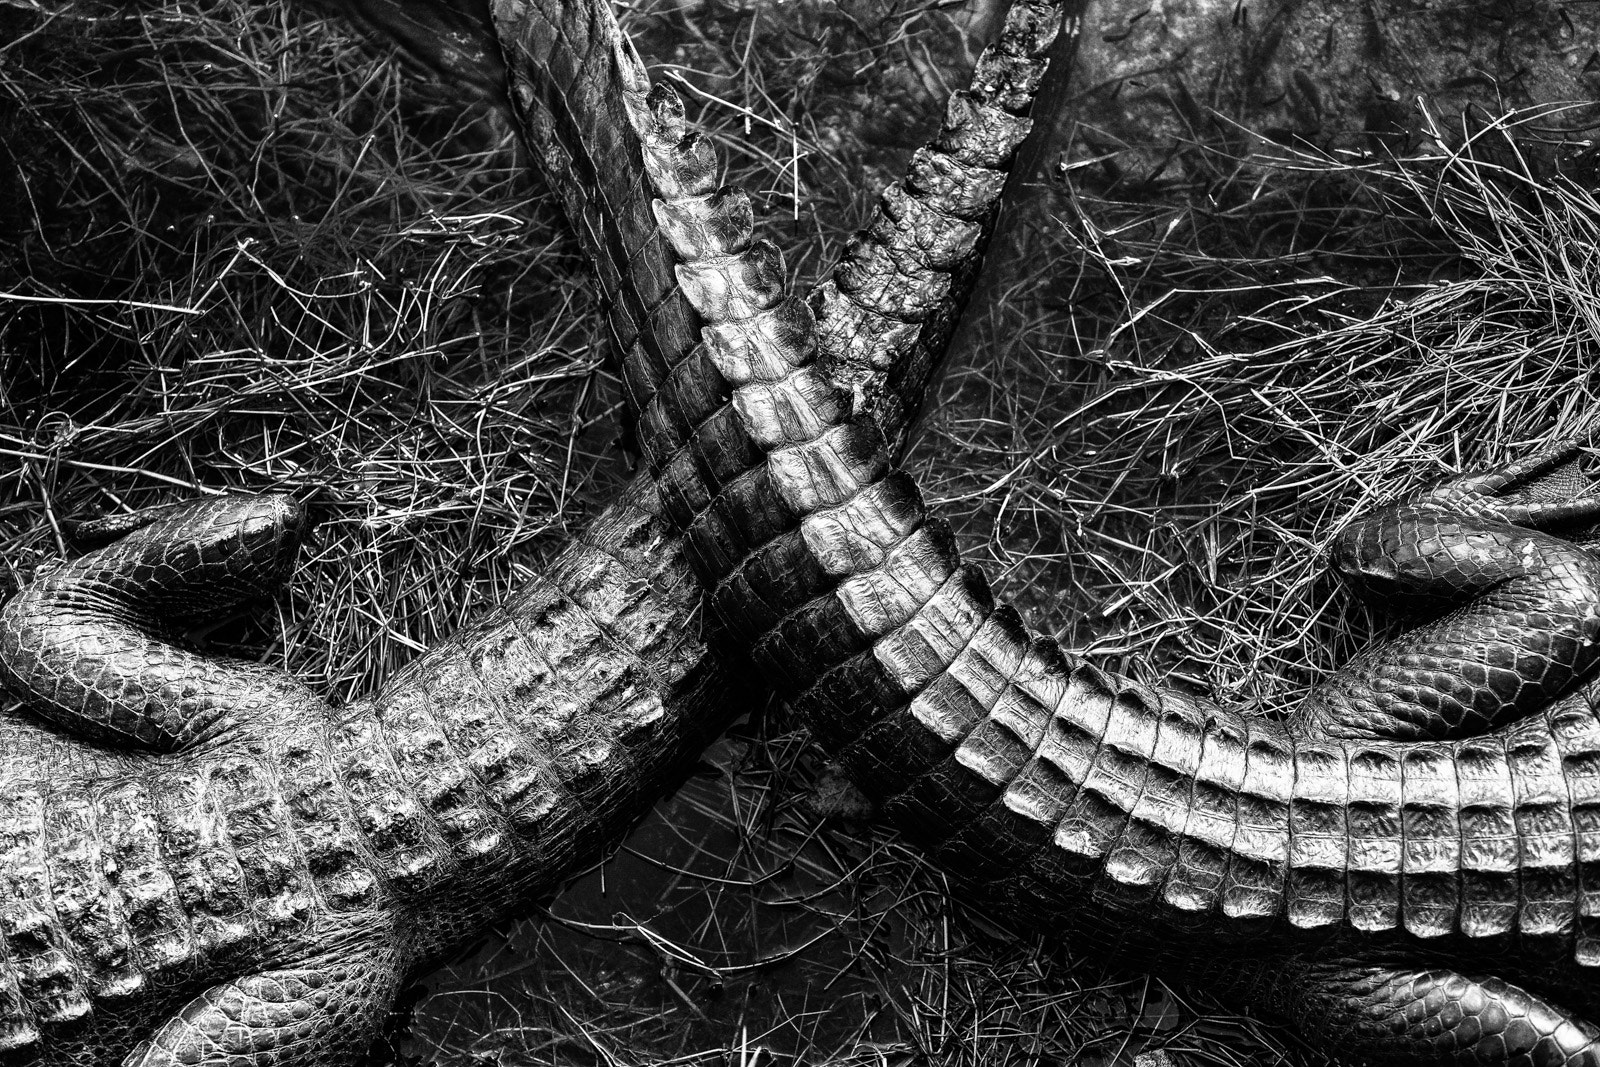 Photograph Gator tails by Thierry Hennet on 500px